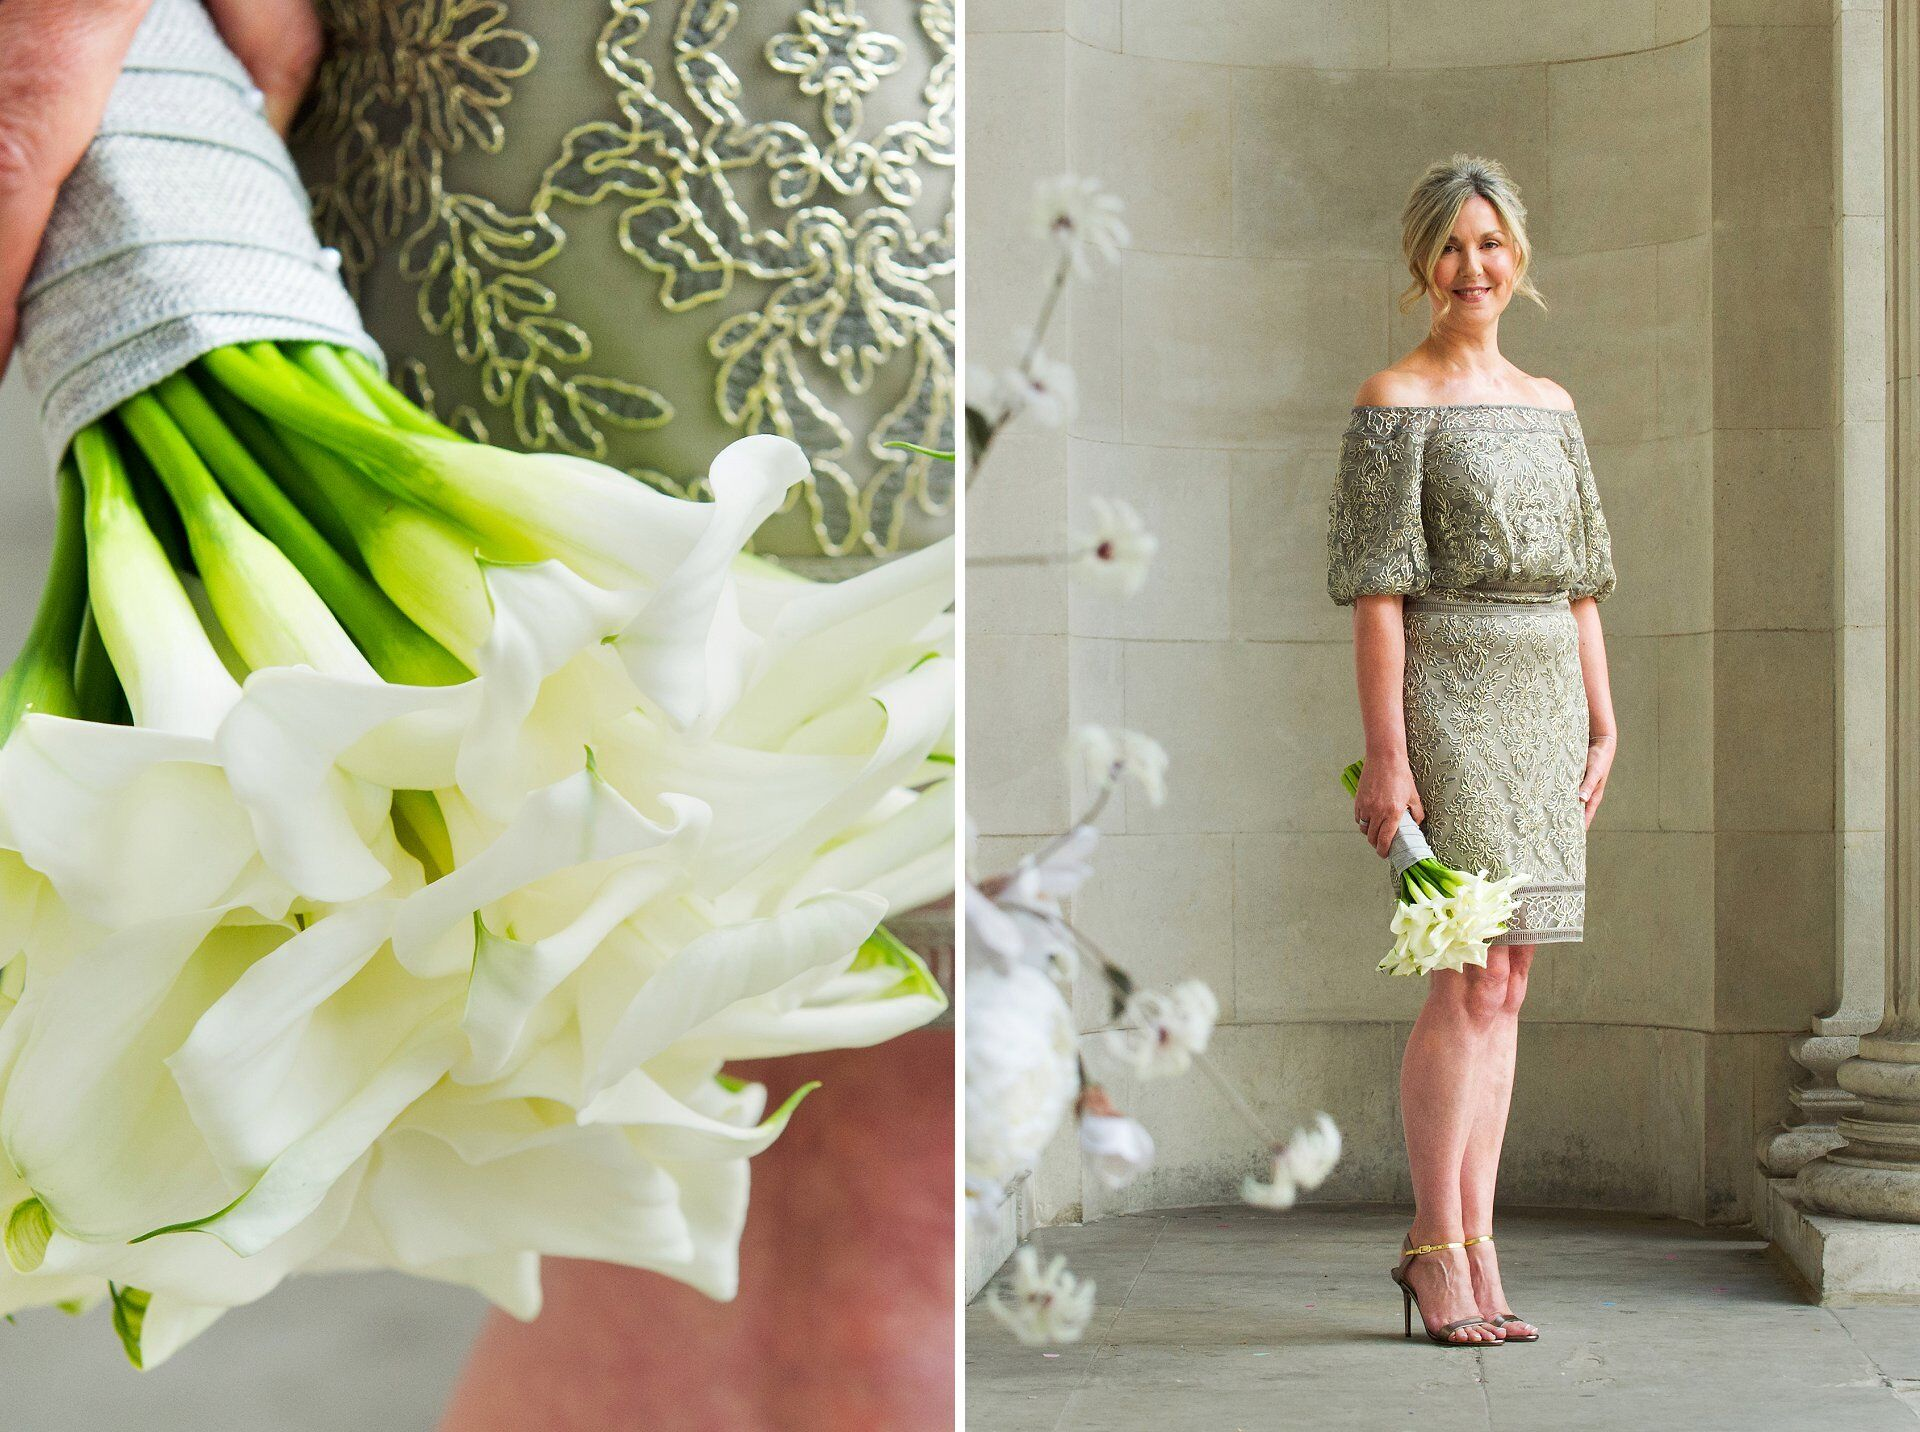 bride in silver grey knee length wedding dress holding calla lilies by westminster register office wedding photographer emma duggan